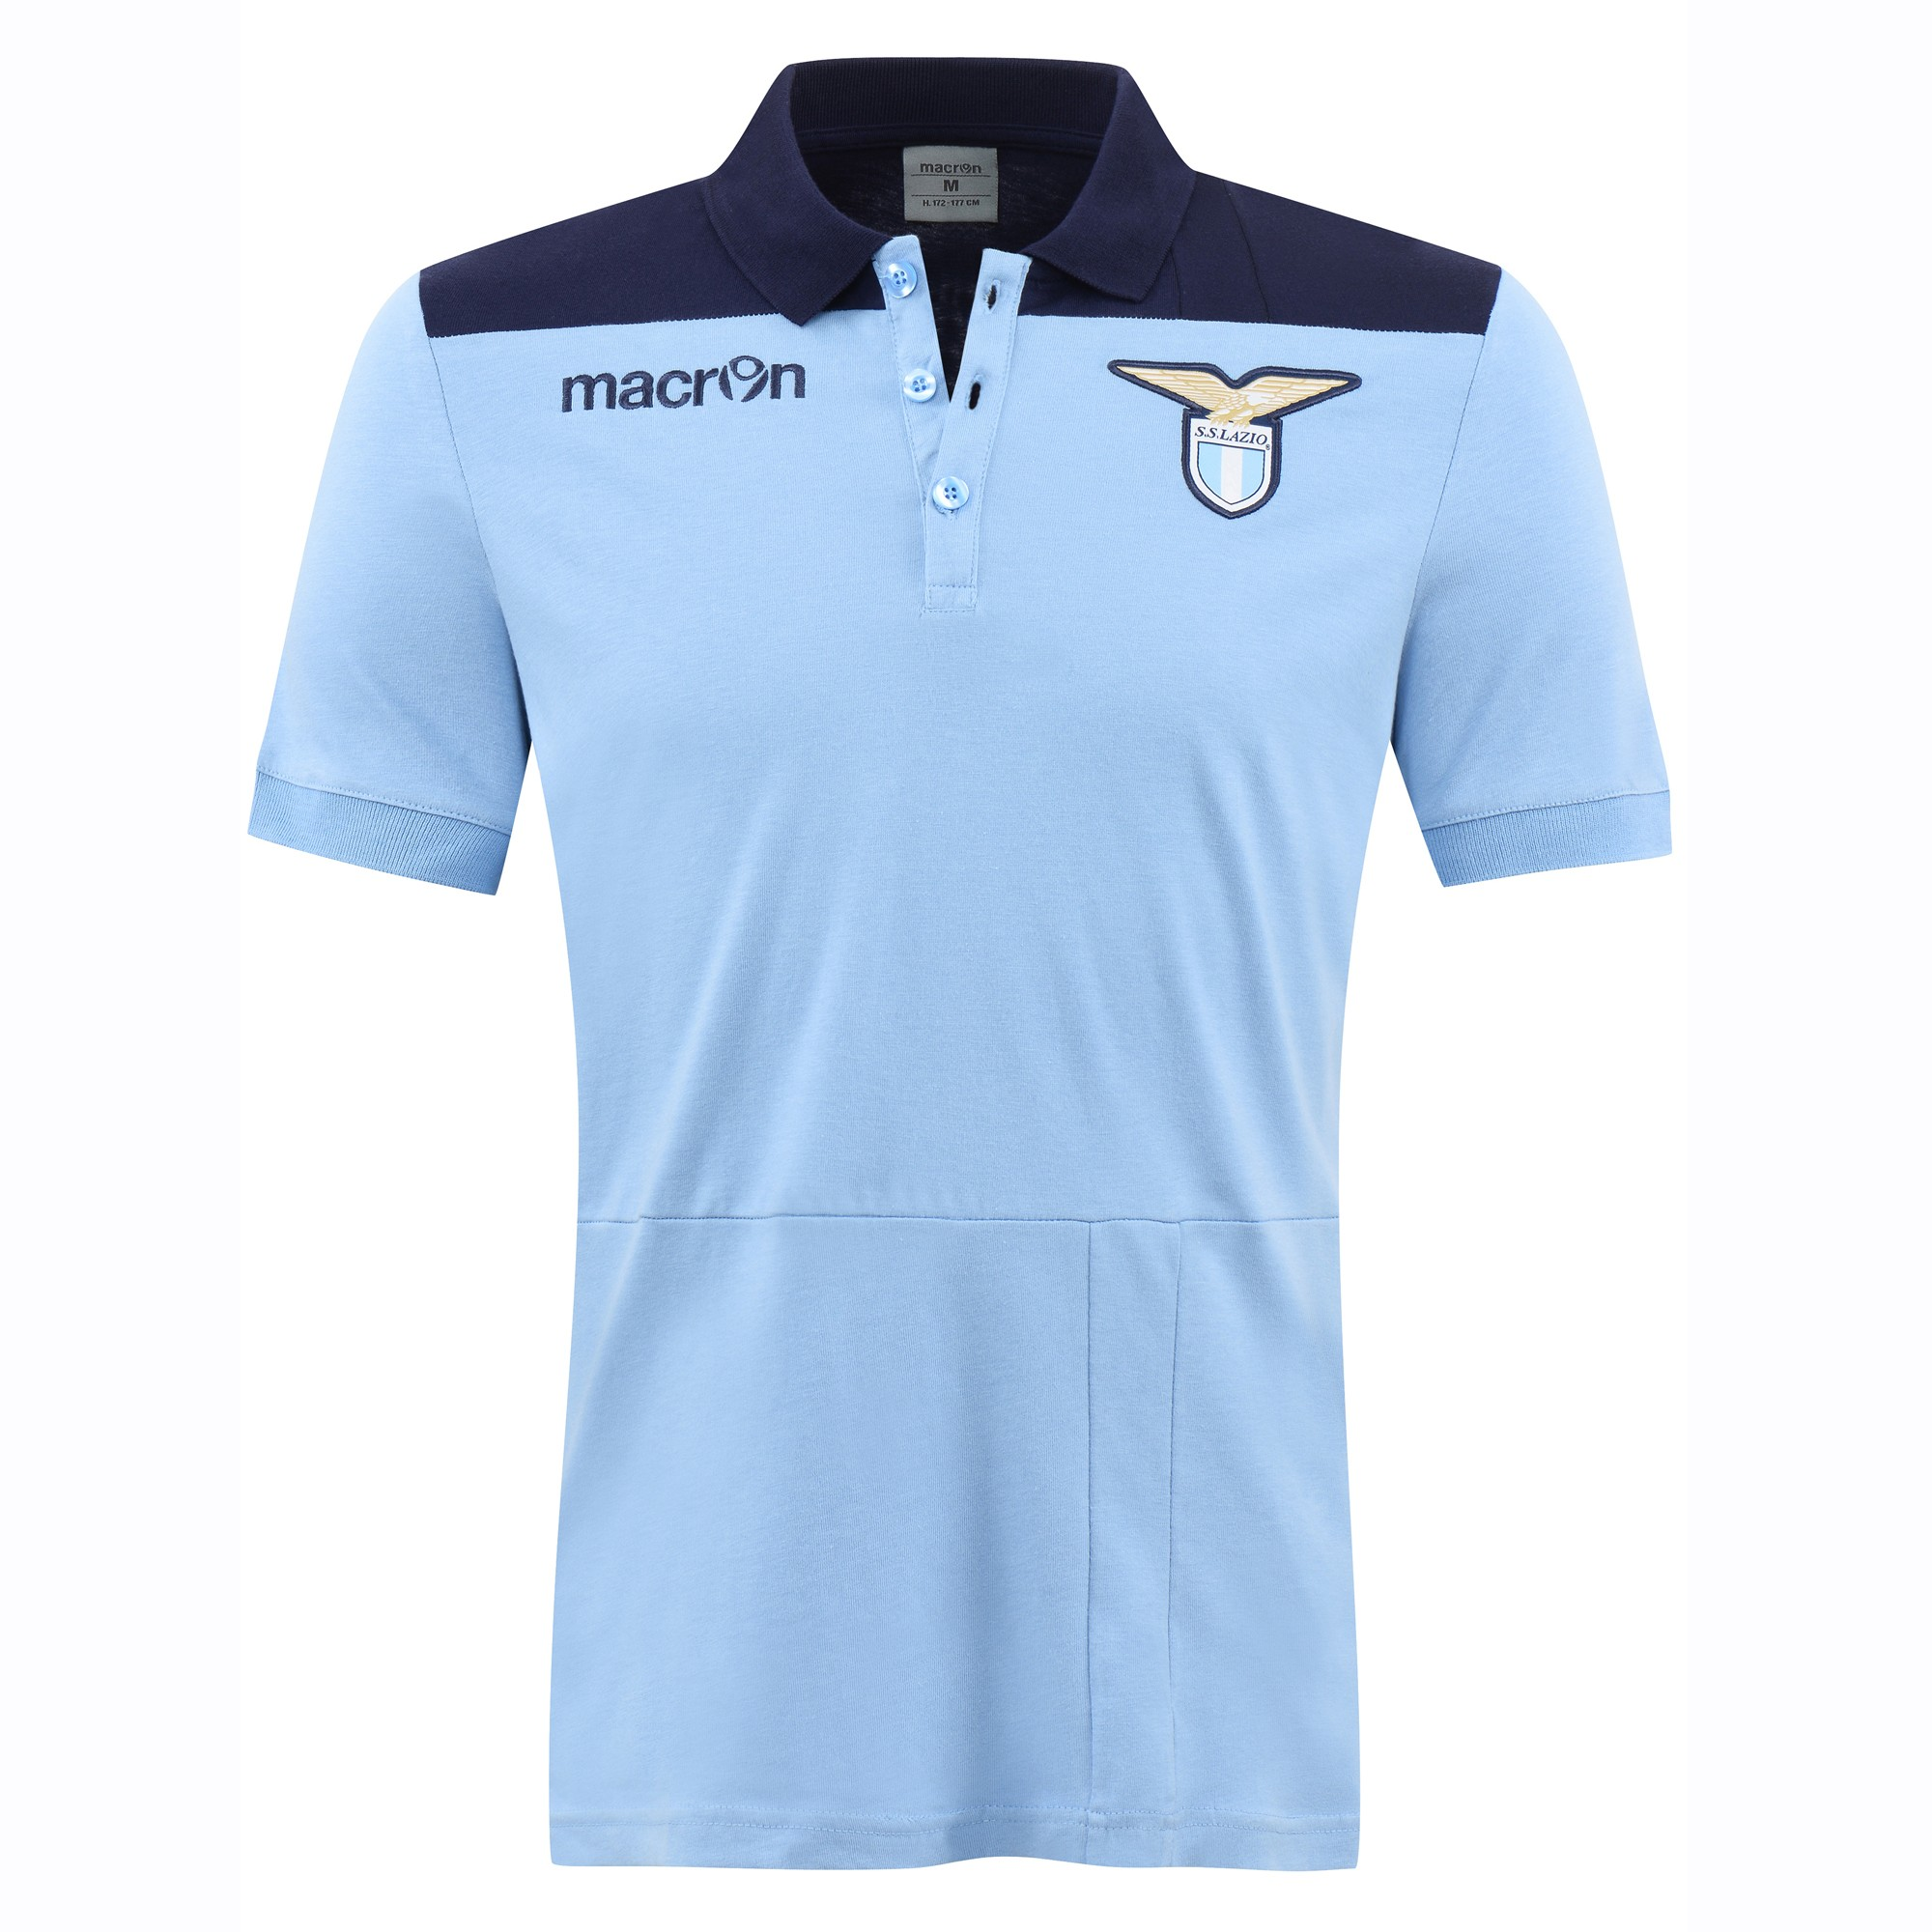 Lazio 2016-2017 Cotton Polo Shirt (Blue)  58089403  -  26.54 Teamzo.com 53973eac8